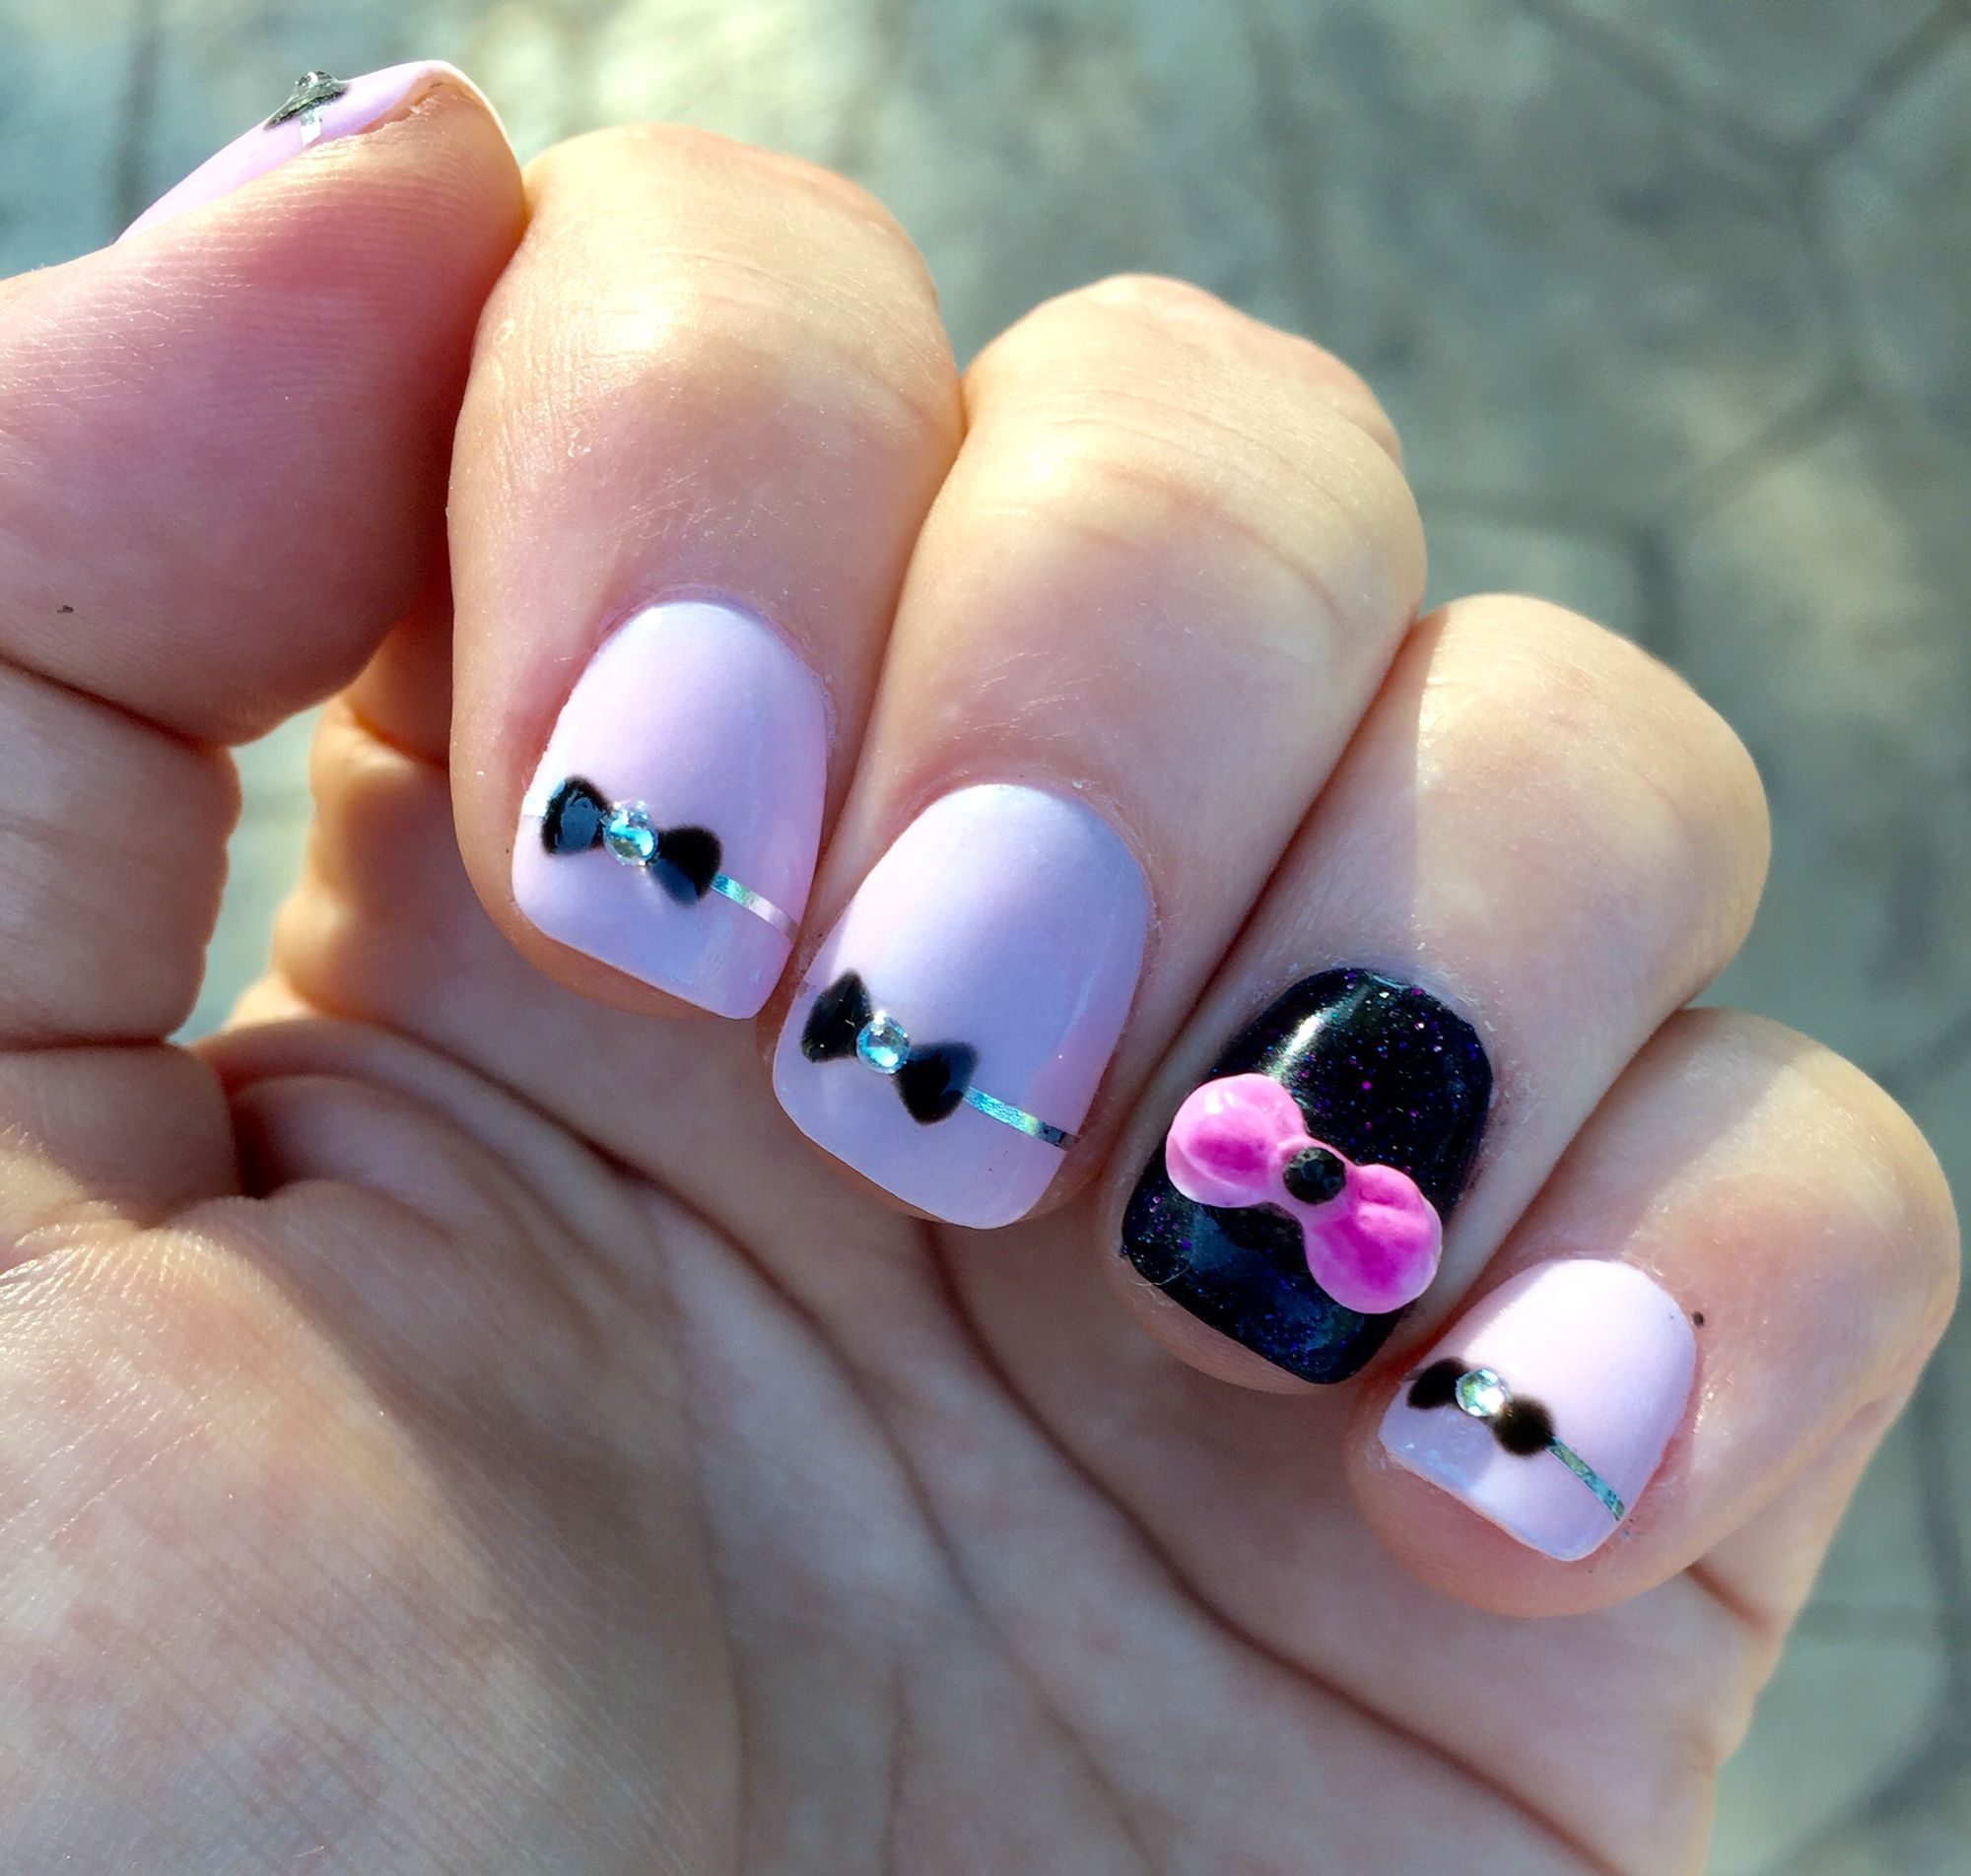 Next Gen nail design - pink and black with a bow and rhinestones. By ...